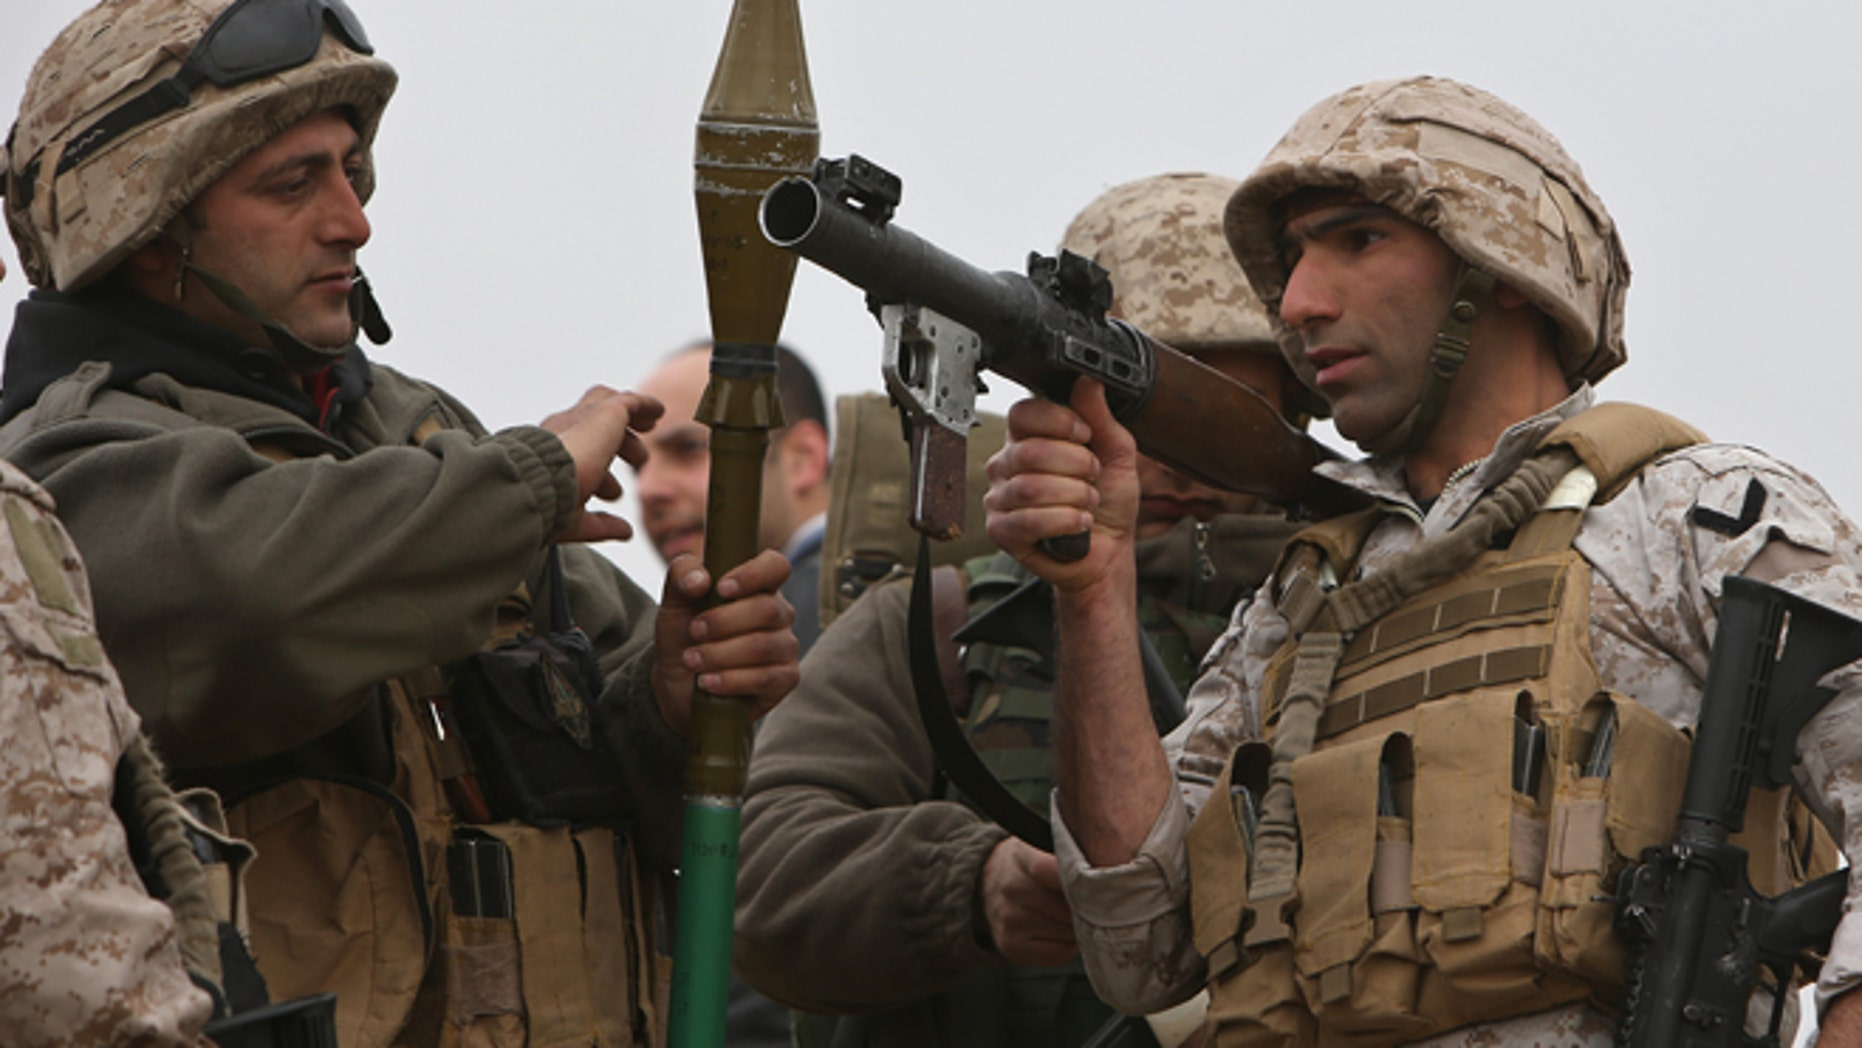 March 17, 2014: Lebanese army soldiers from a commandos unit, prepare to search an area where they blew up a bomb-packed parked car, in a field outside the village of Fakiha, near the Lebanese and Syria border, in northeast Lebanon.